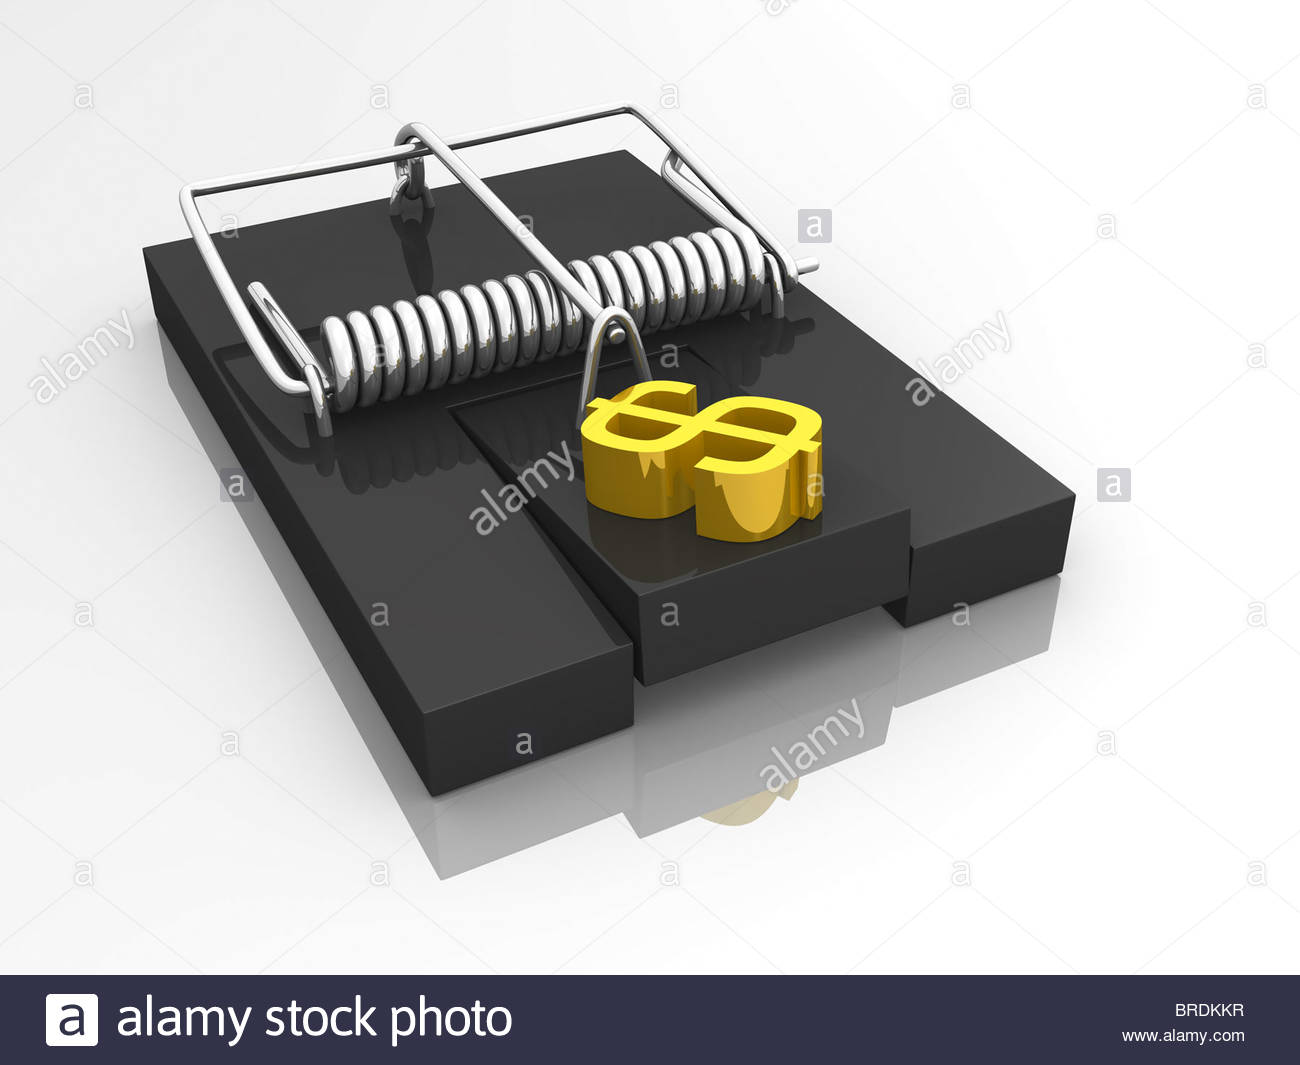 dept trap icon - Stock Image